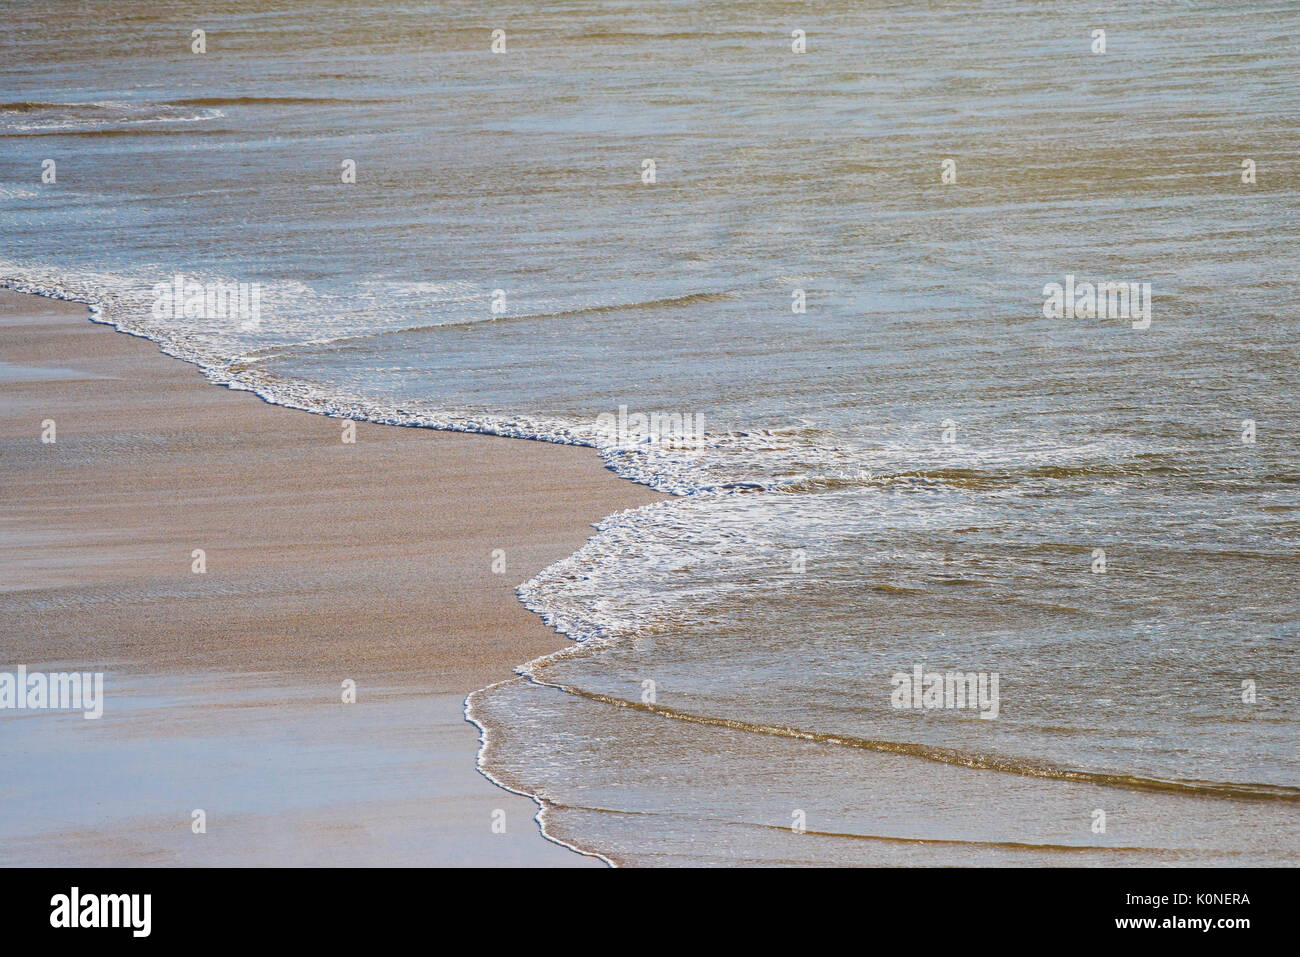 Incoming tide on a deserted beach. - Stock Image